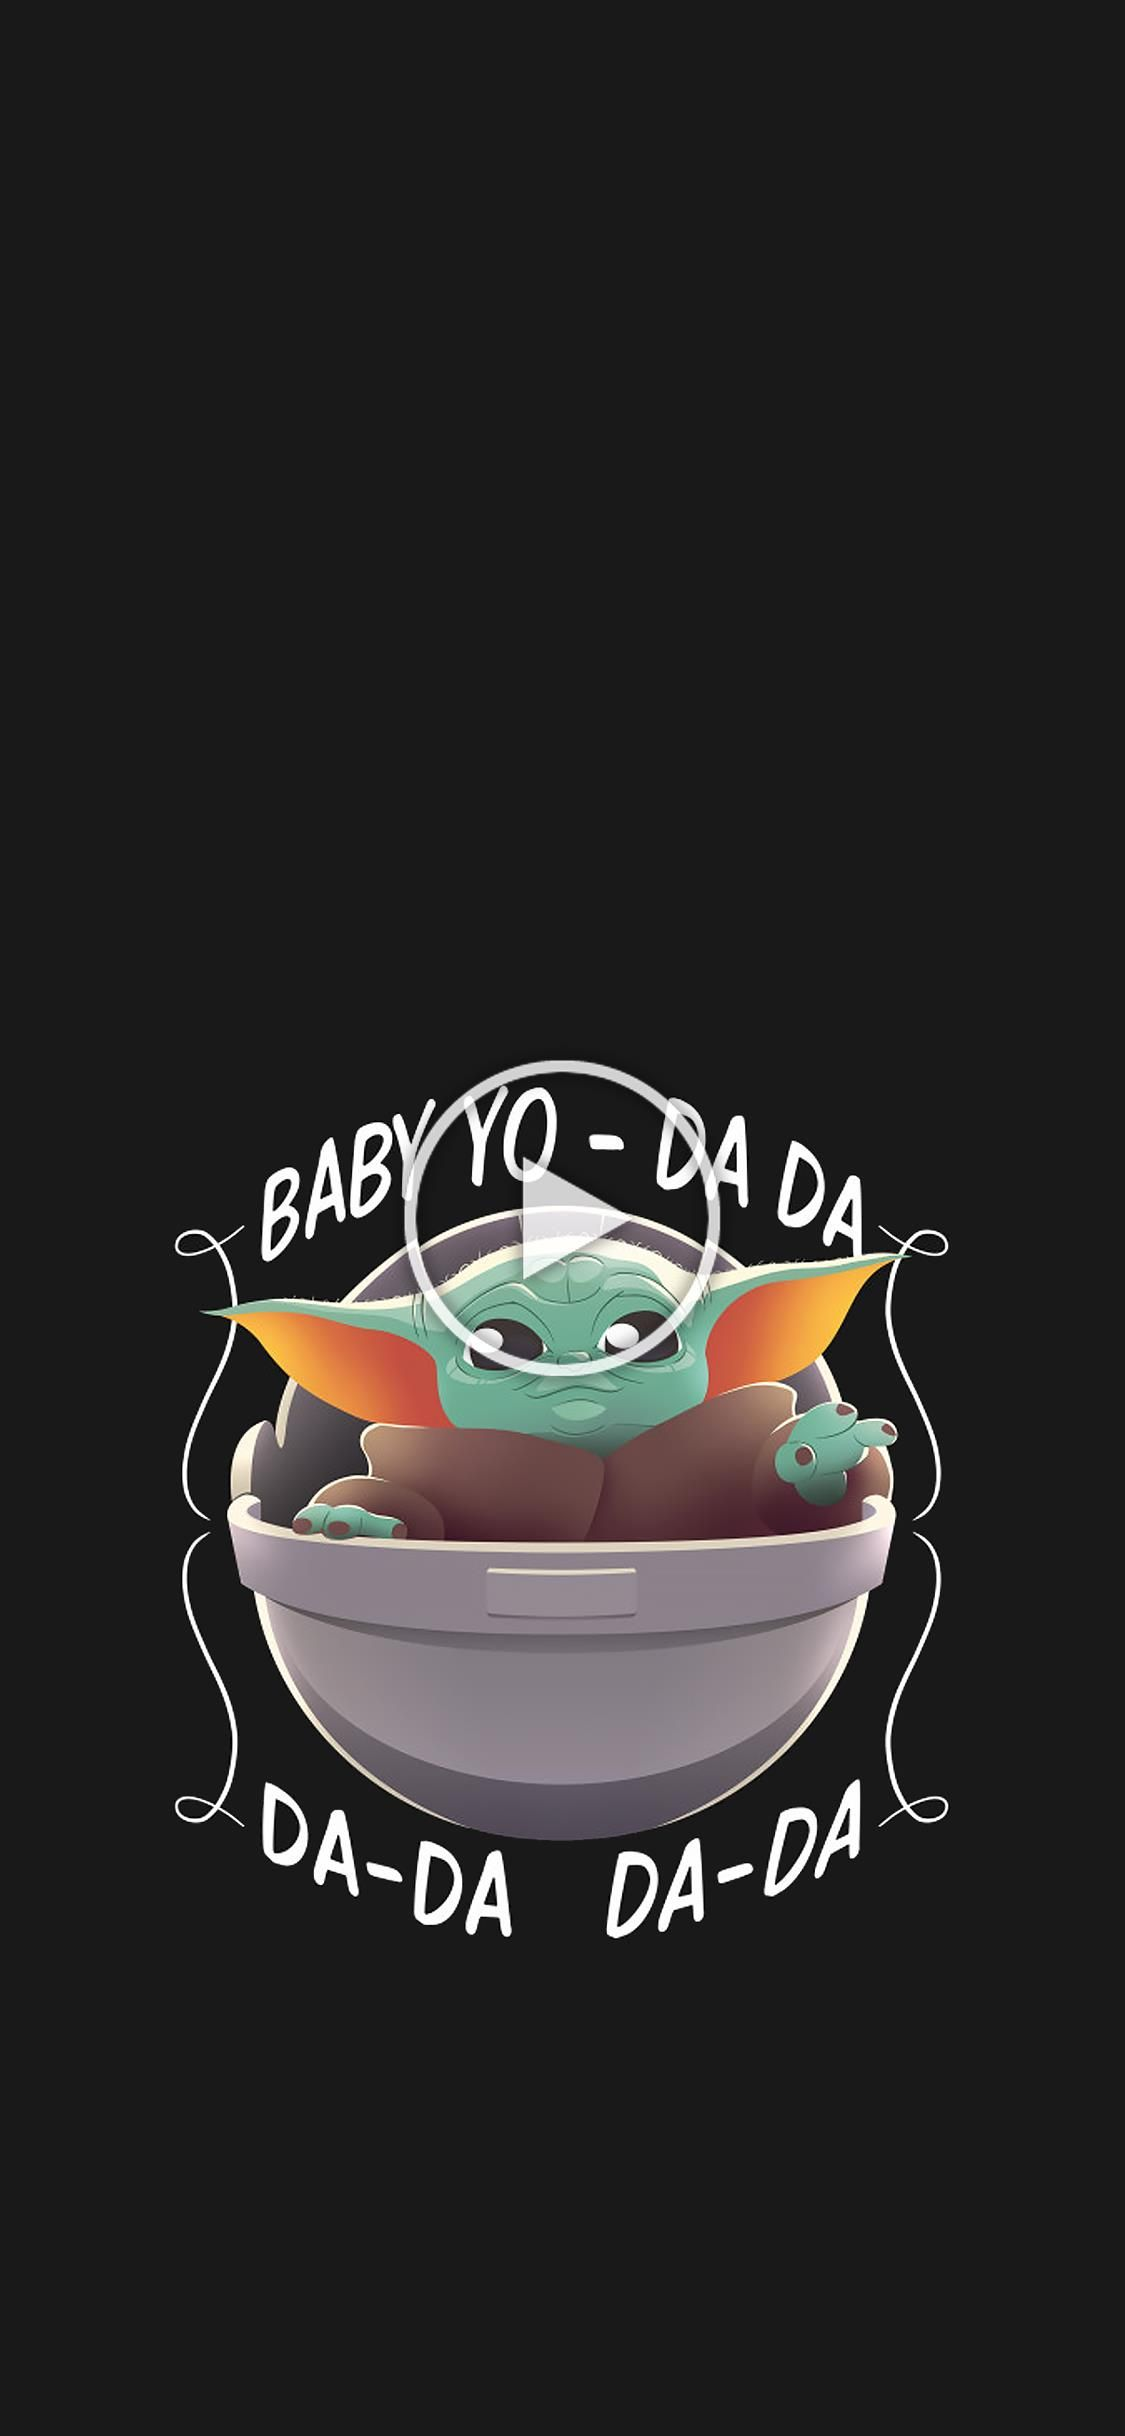 Found Baby Yoda And Made It Mobile Friendly Bedroom Diy 4k Phone Wallpapers Phone Wallpaper